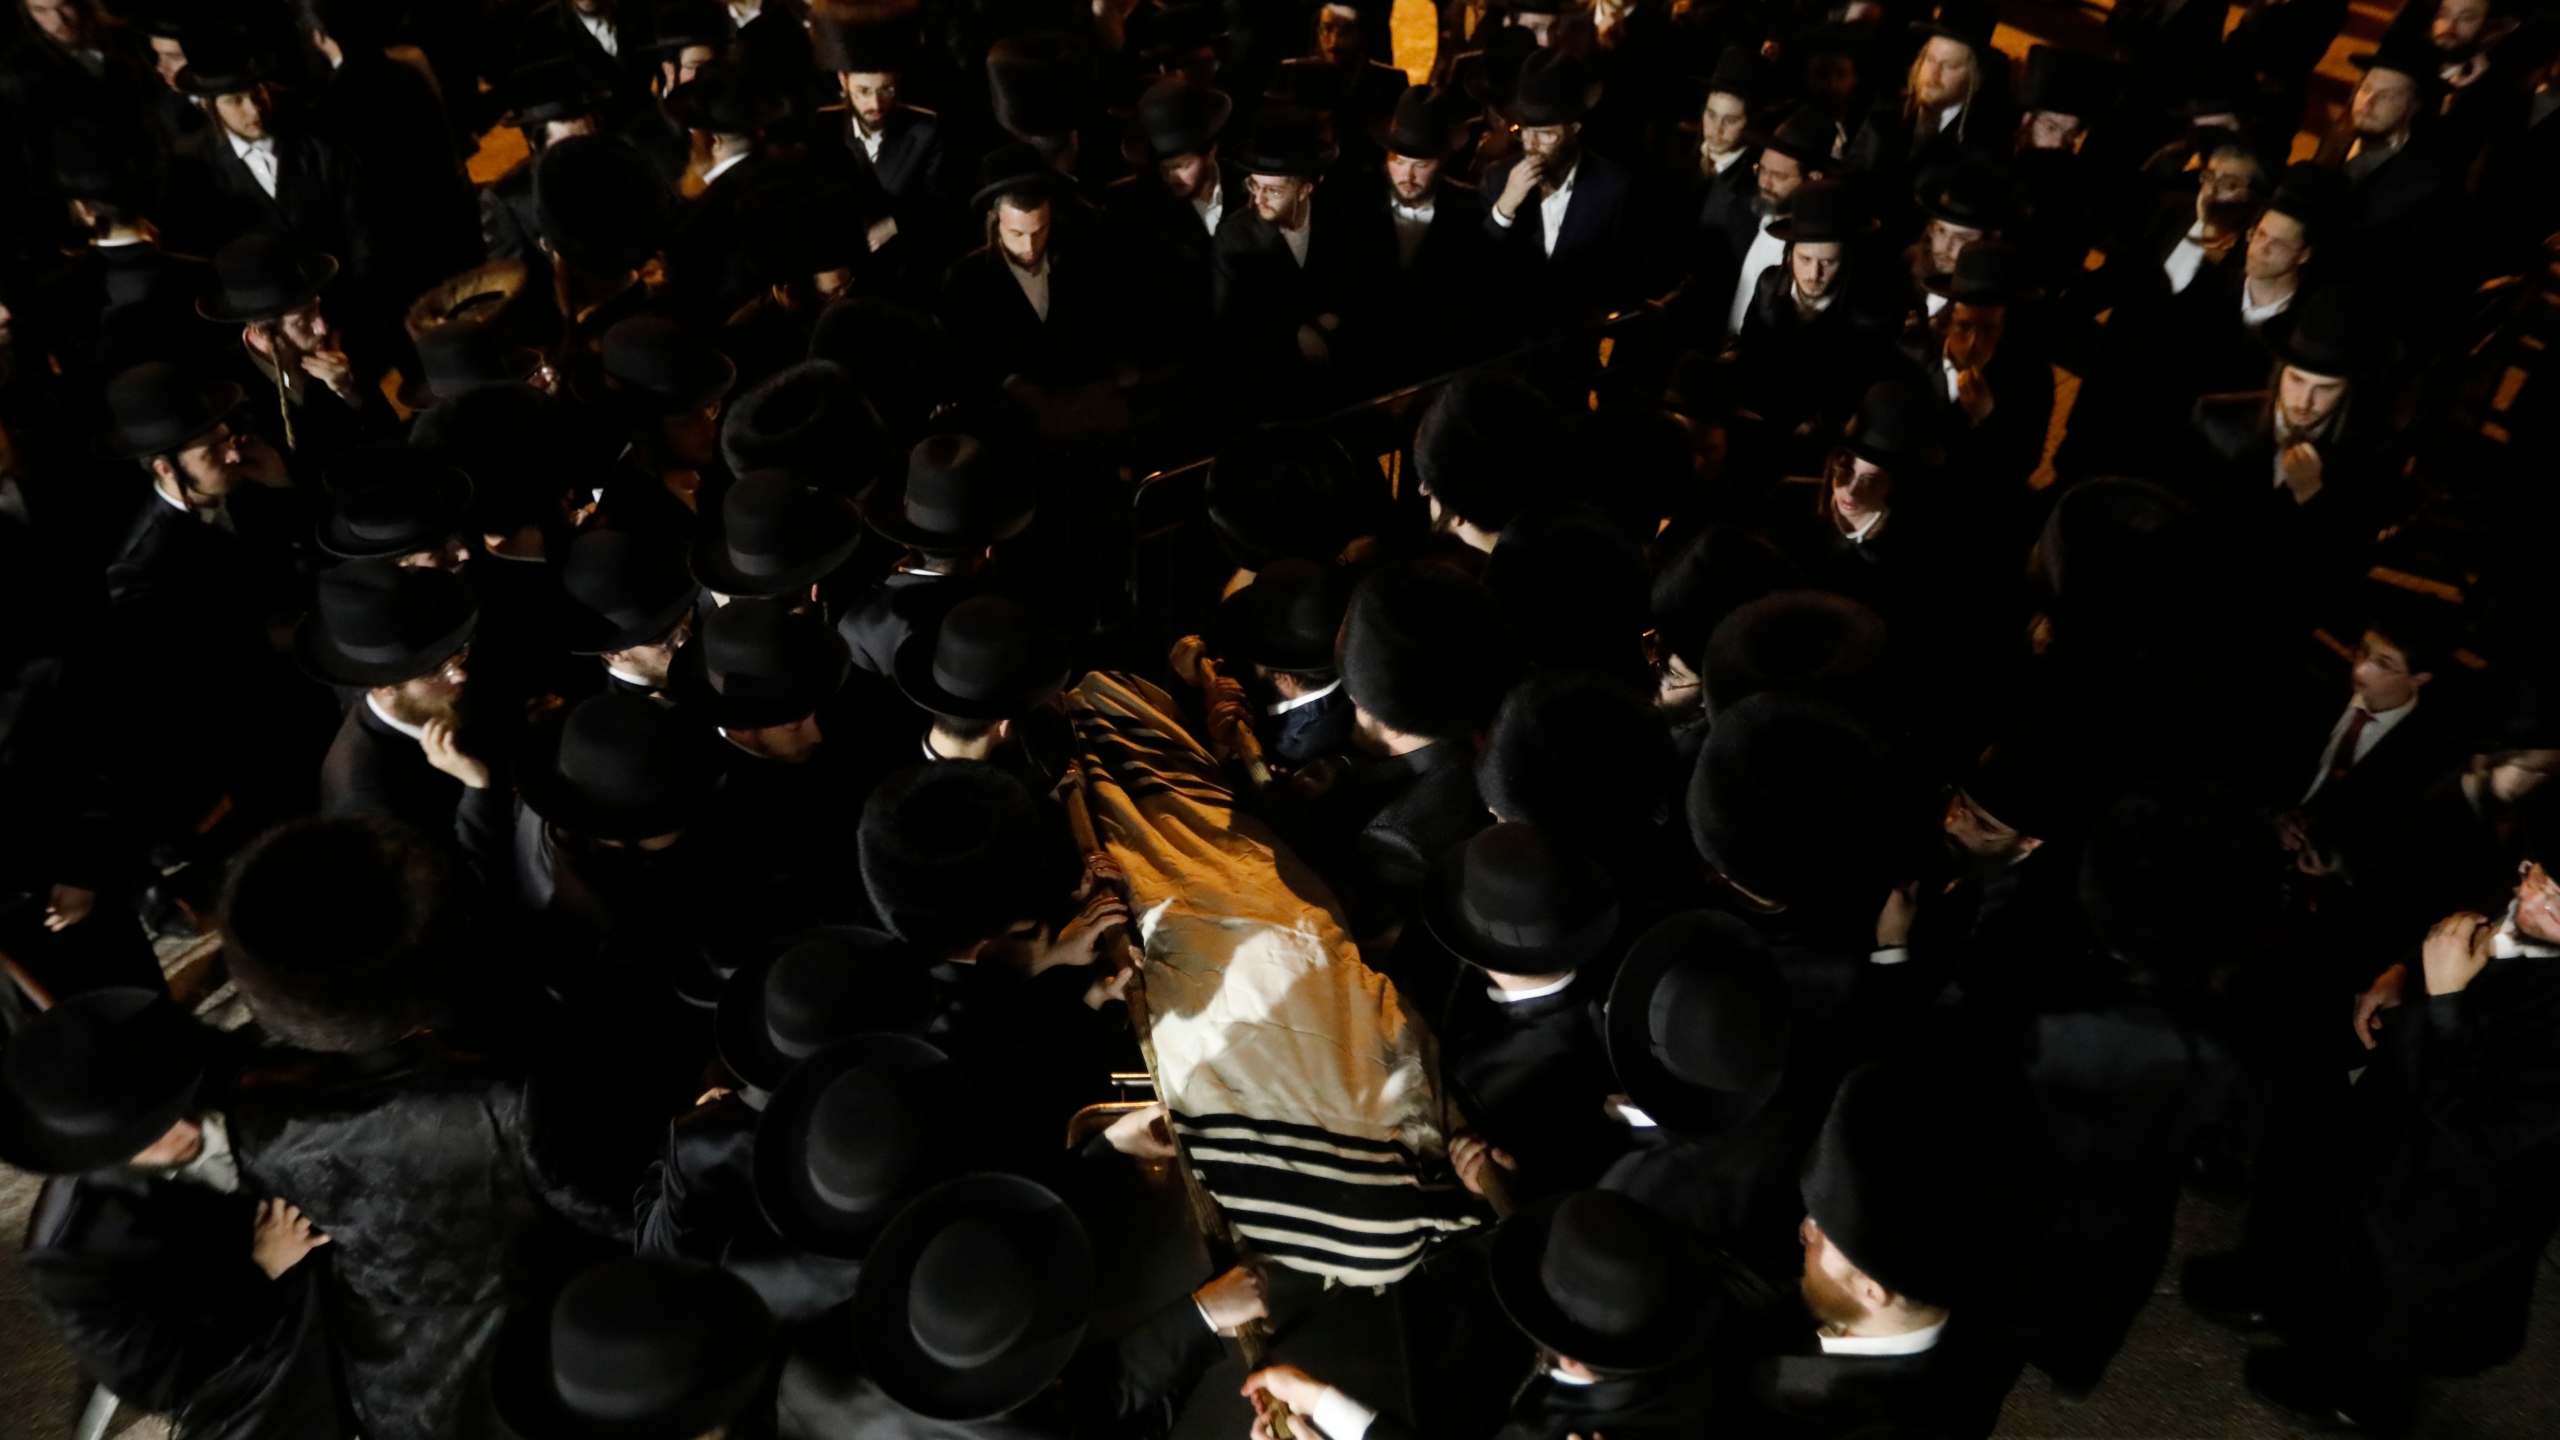 Mourners carry the body of Menachem Knoblowitz, 21, from the United States, who died during Lag BaOmer celebrations at Mt. Meron in northern Israel, at his funeral in Jerusalem on Saturday, May 1 2021. A stampede at a religious festival attended by tens of thousands of ultra-Orthodox Jews in northern Israel killed dozens of people and injured about 150 early Friday, medical officials said. It was one of the country's deadliest civilian disasters. (AP Photo/Ariel Schalit)